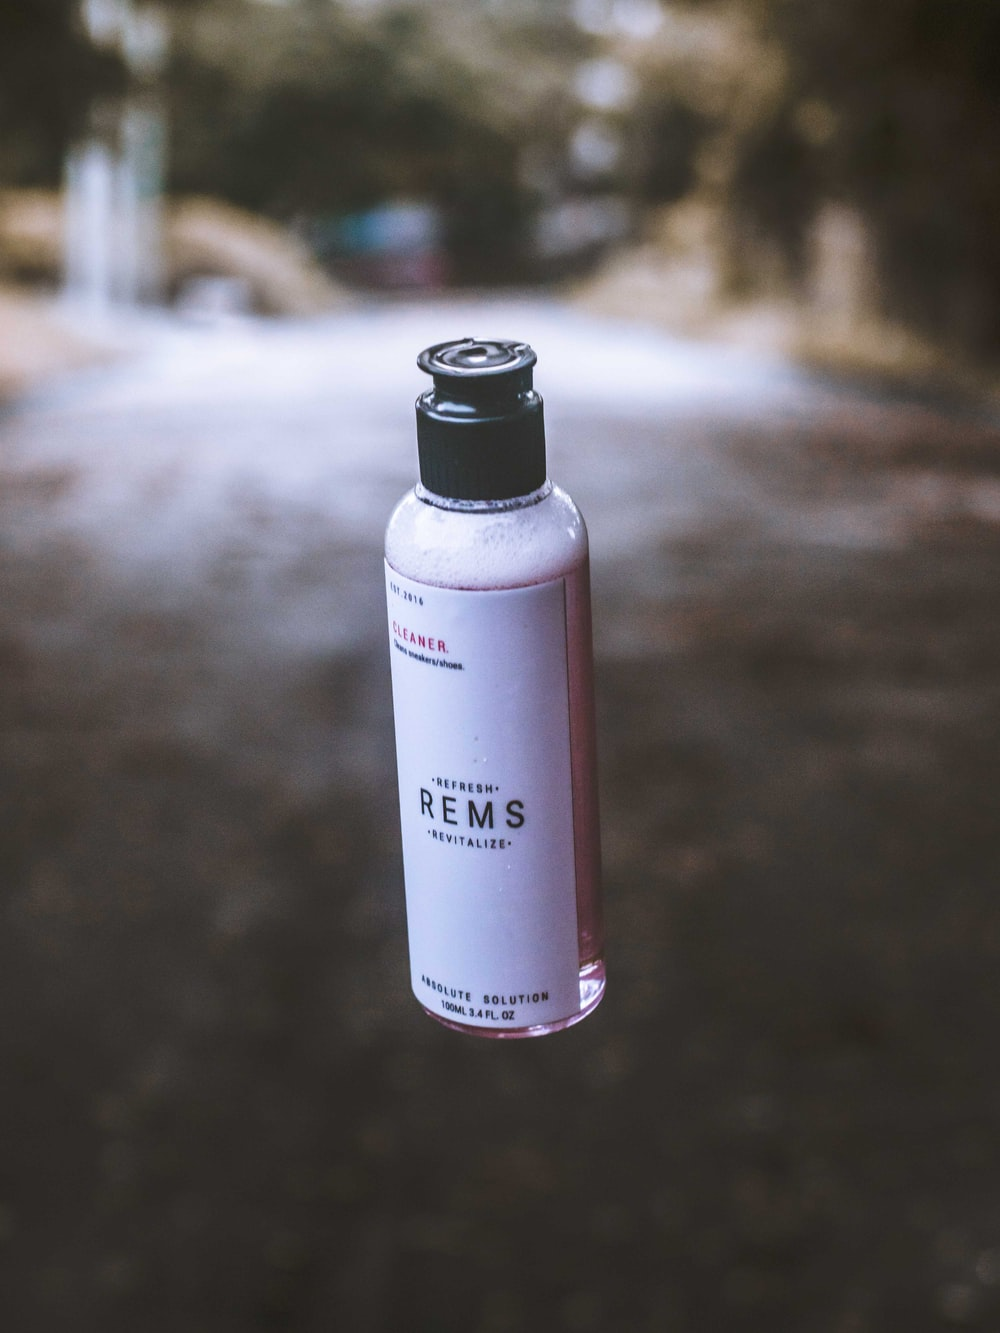 white and black Rems bottle floating